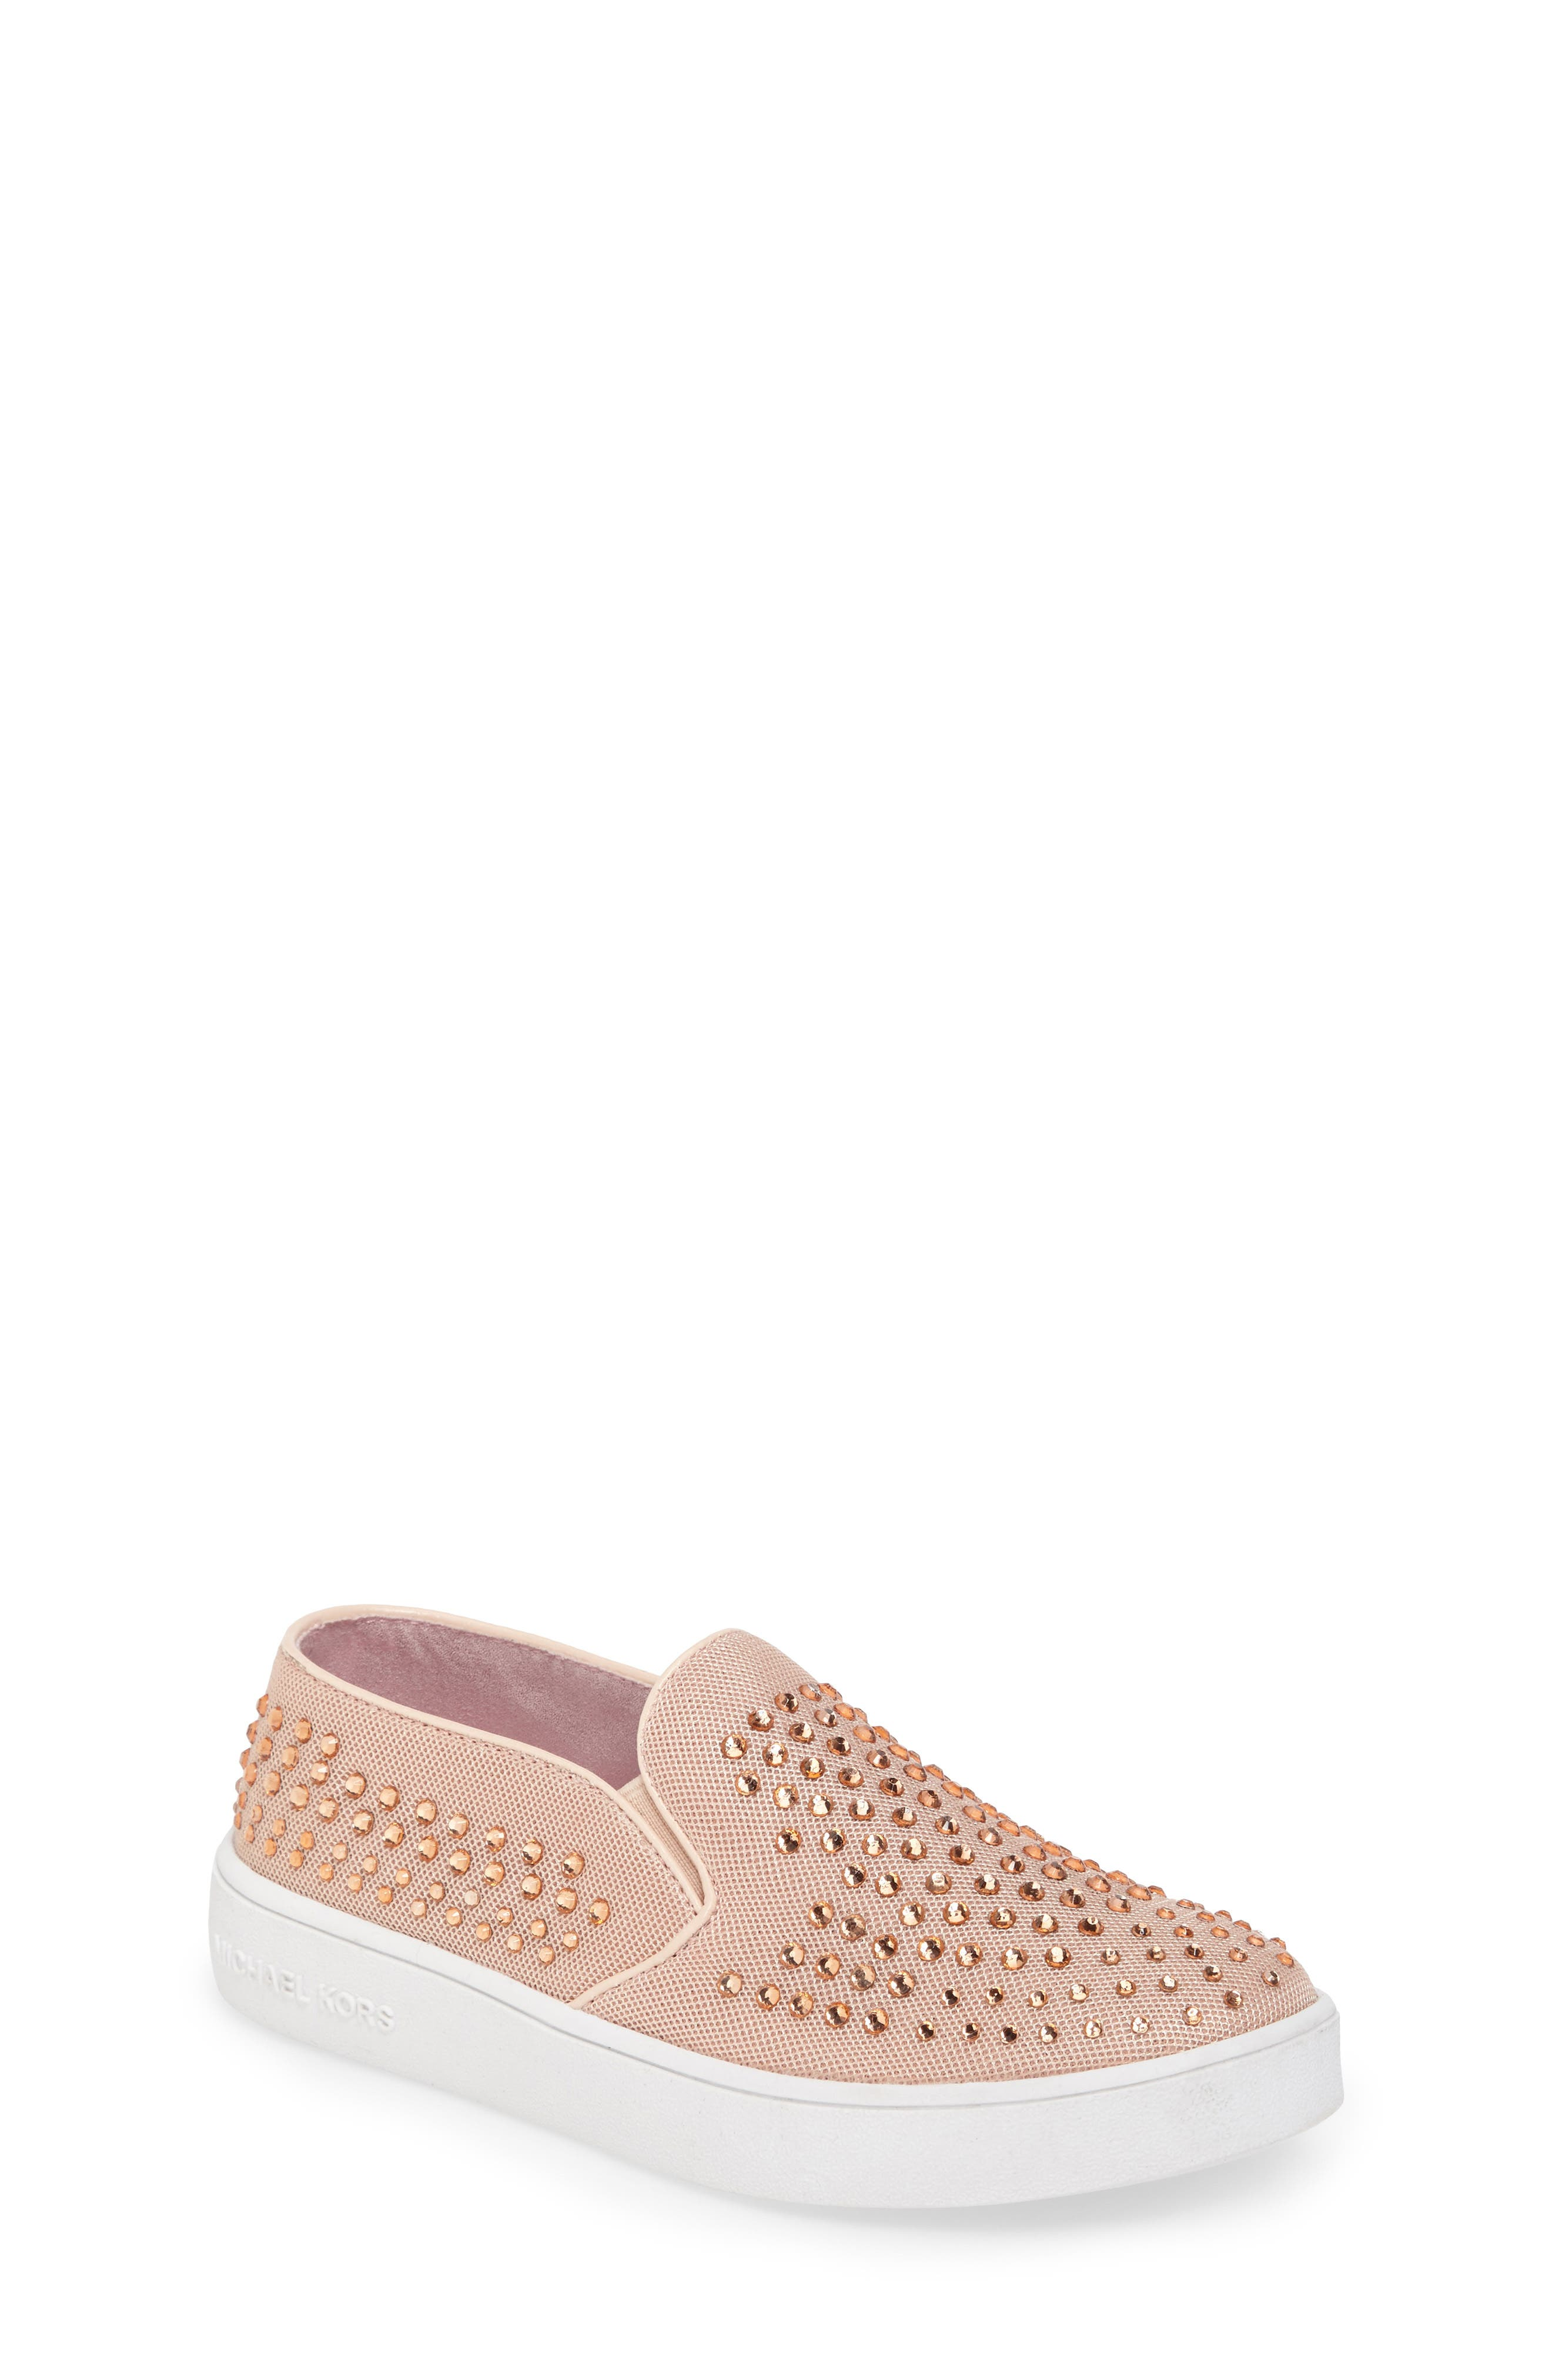 MICHAEL MICHAEL KORS Ivy Meadow Slip-On Sneaker